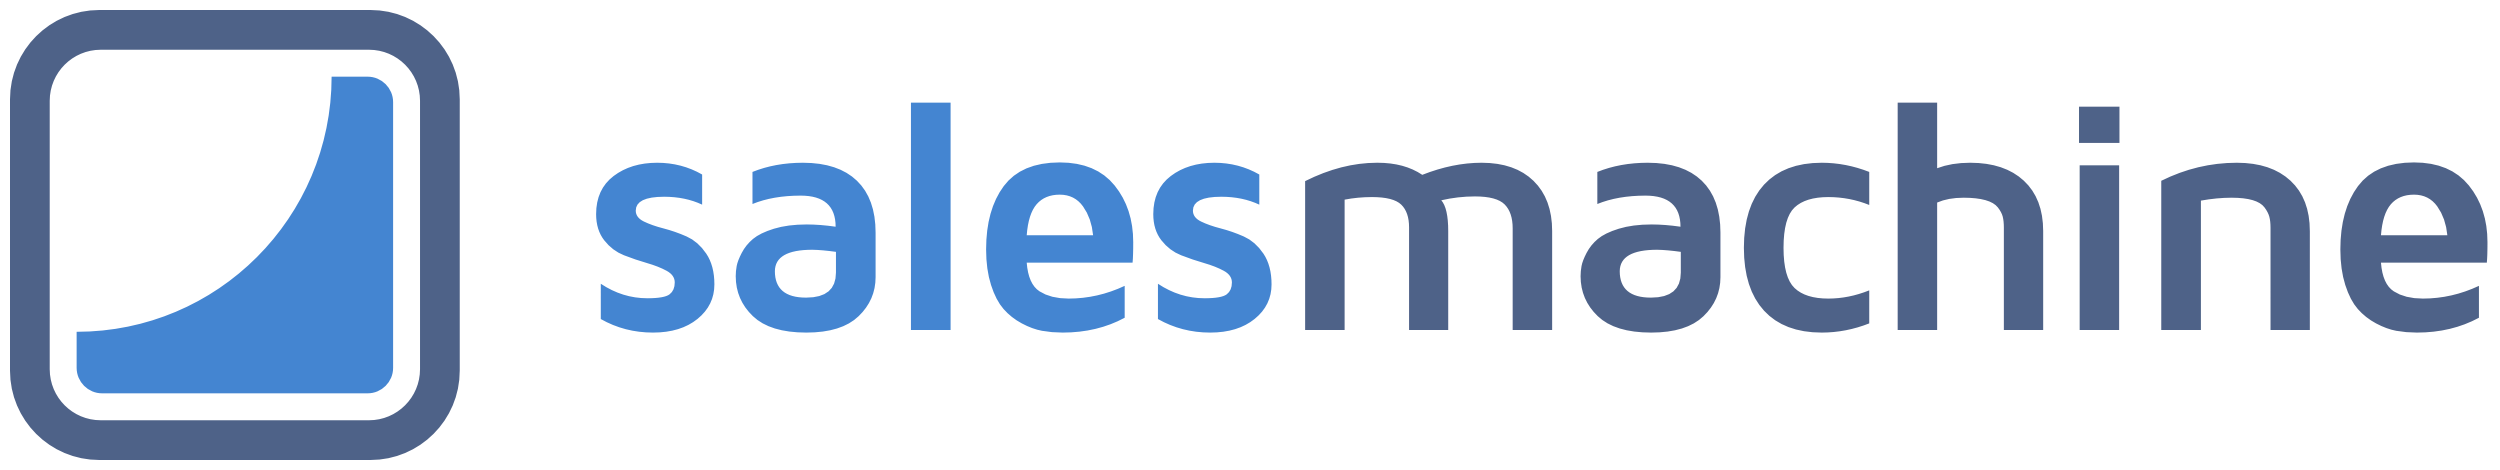 salesmachine_logo_blue.png